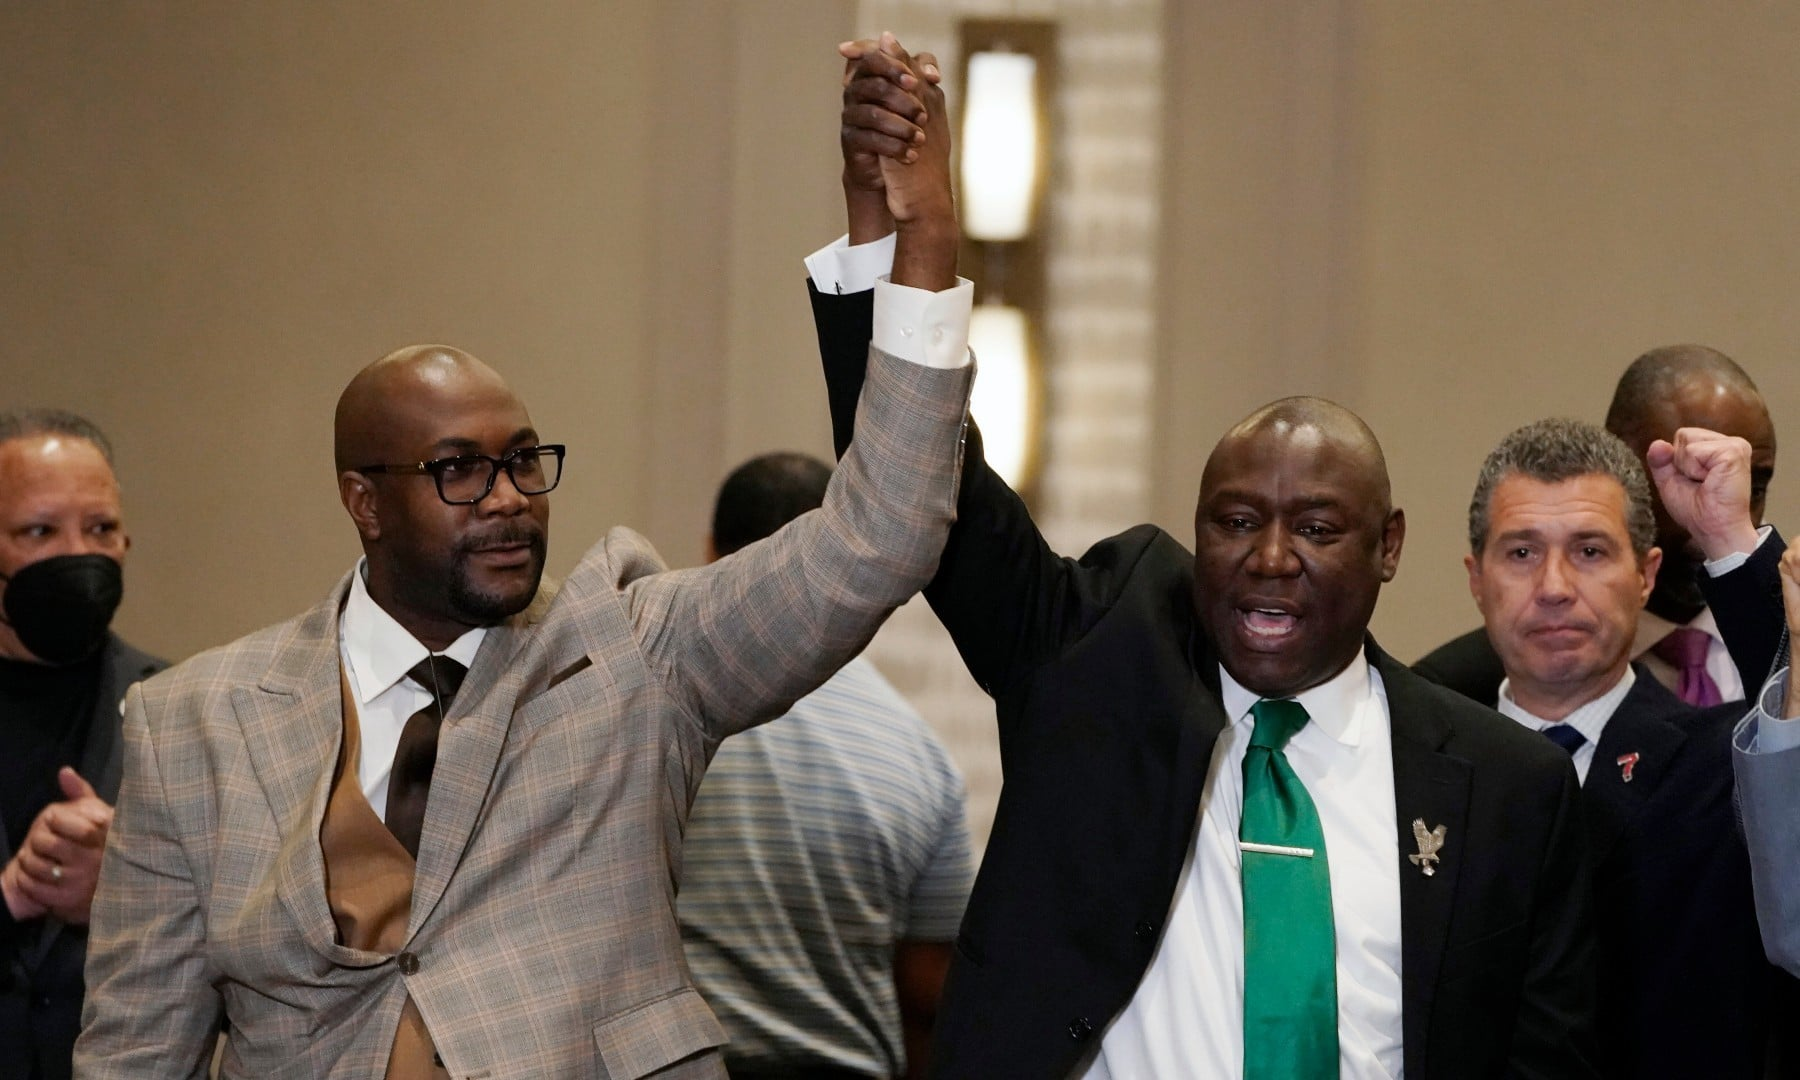 Philonise, left, and attorney Ben Crump react during a news conference after the guilty verdict was read in the trial of former Minneapolis police Officer Derek Chauvin on April 20. —  AP